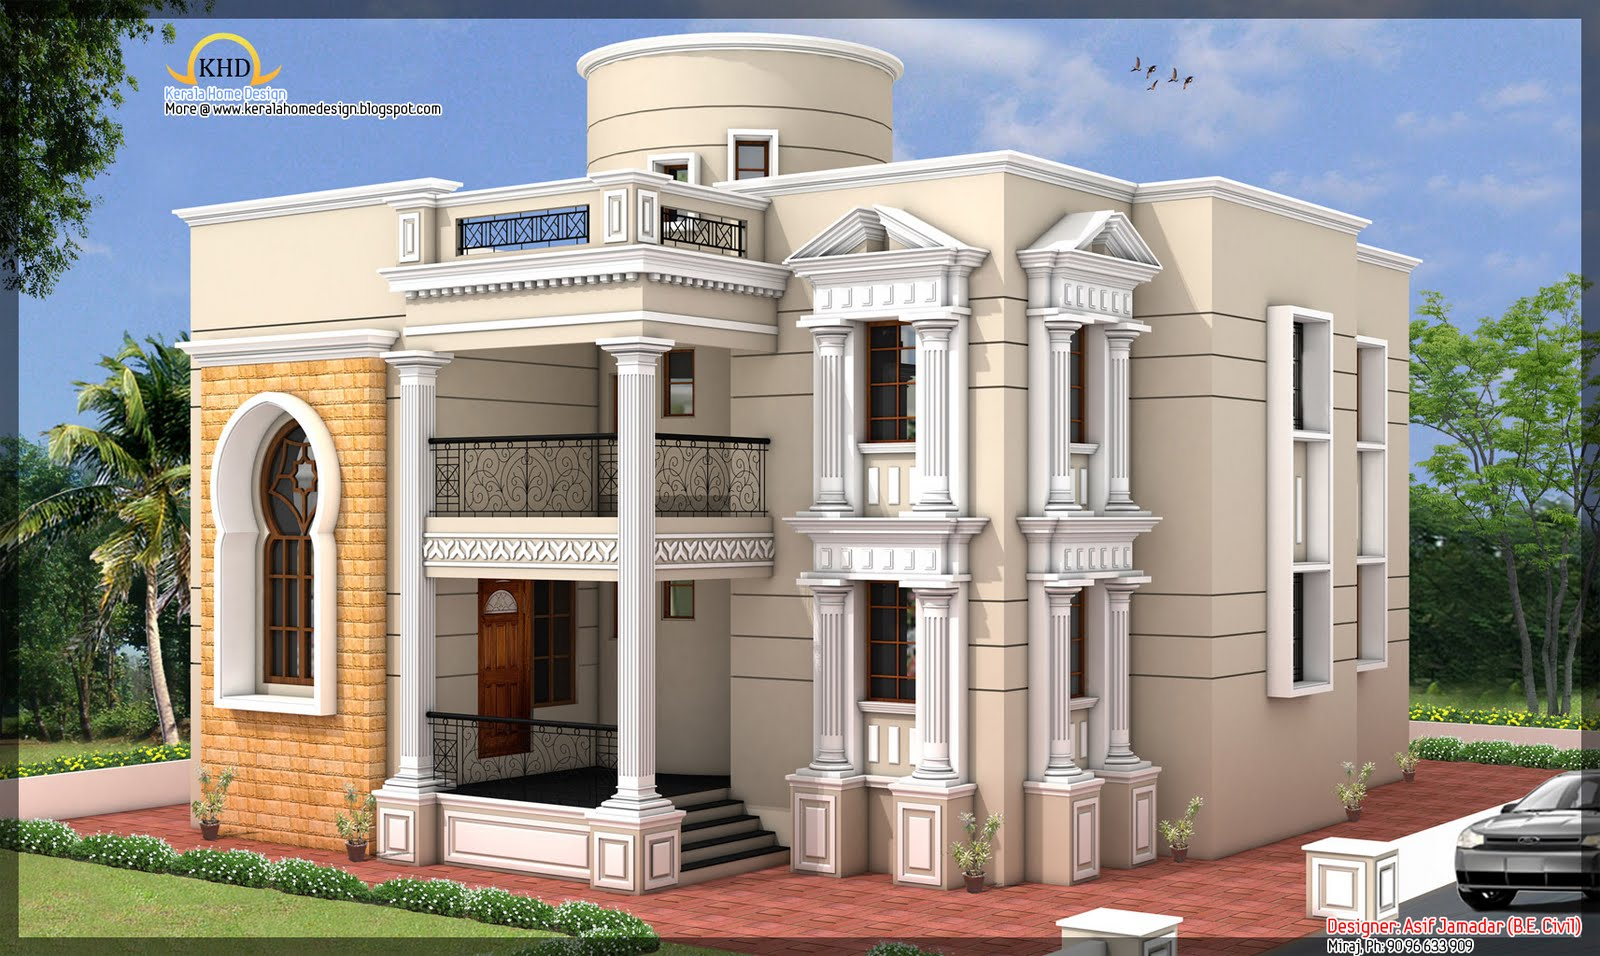 Remarkable Arabic Modern House Design 1600 x 956 · 282 kB · jpeg